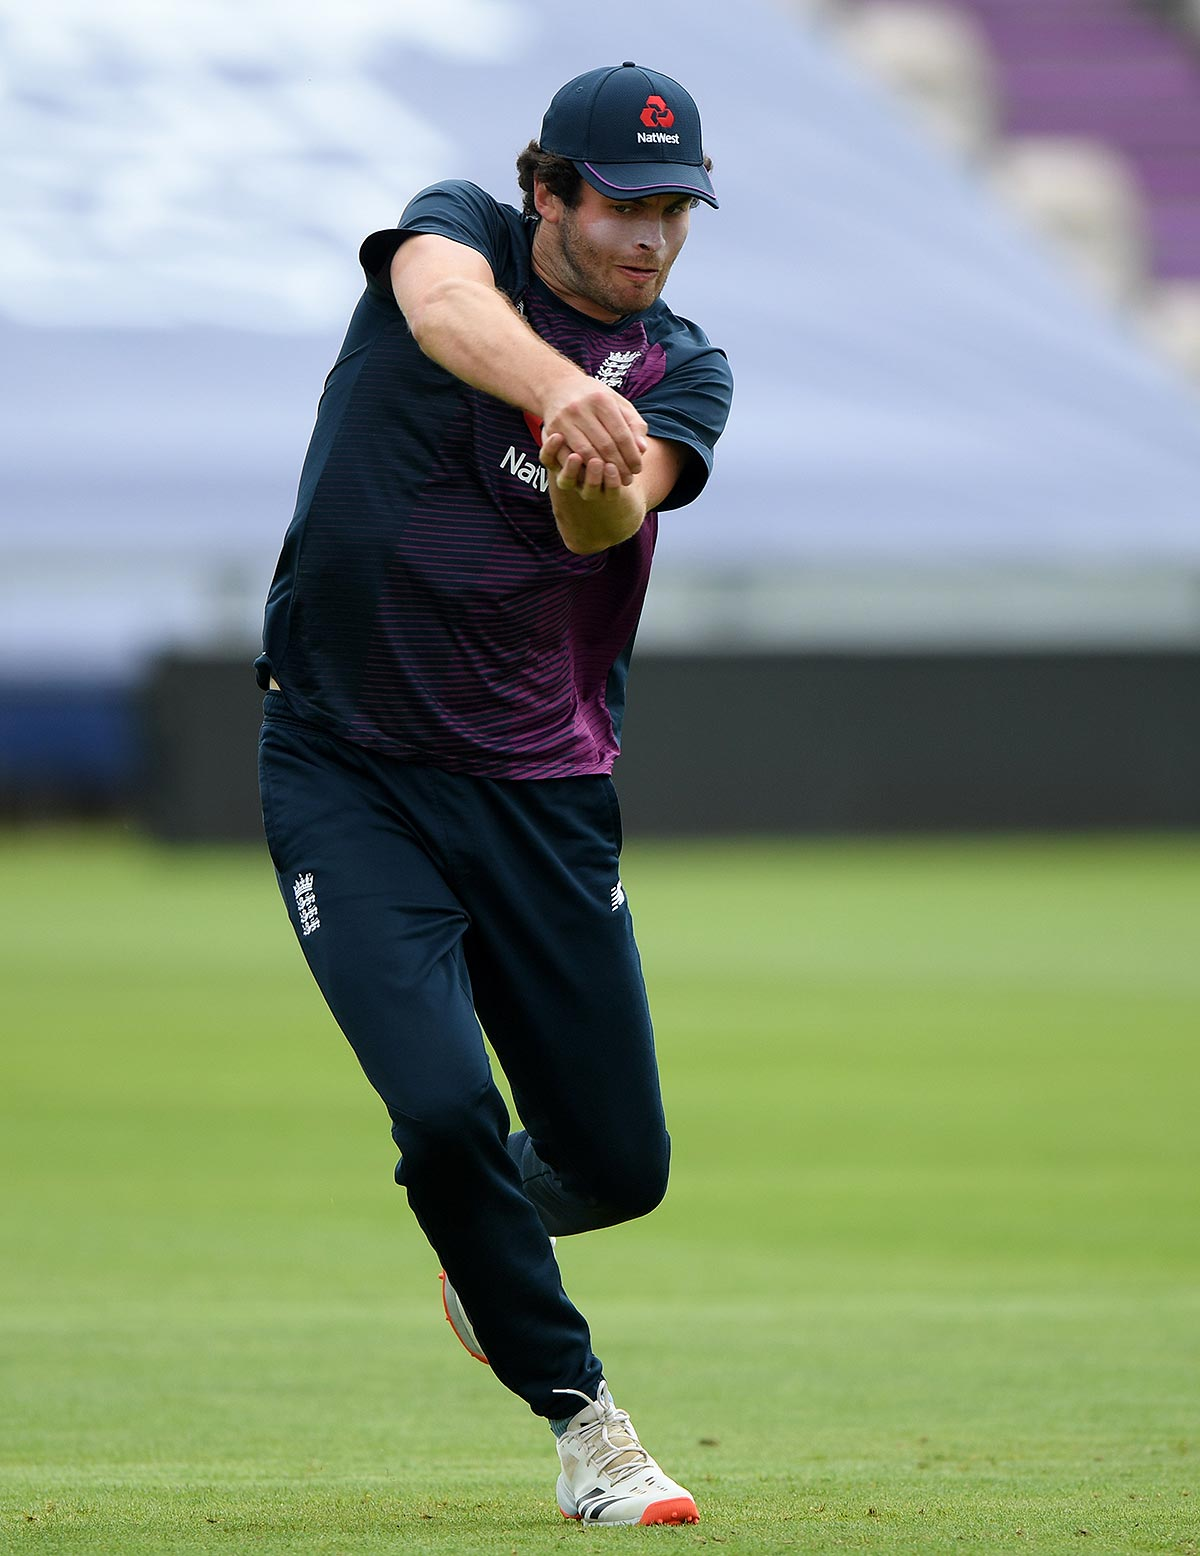 Sibley at England training this week // Getty